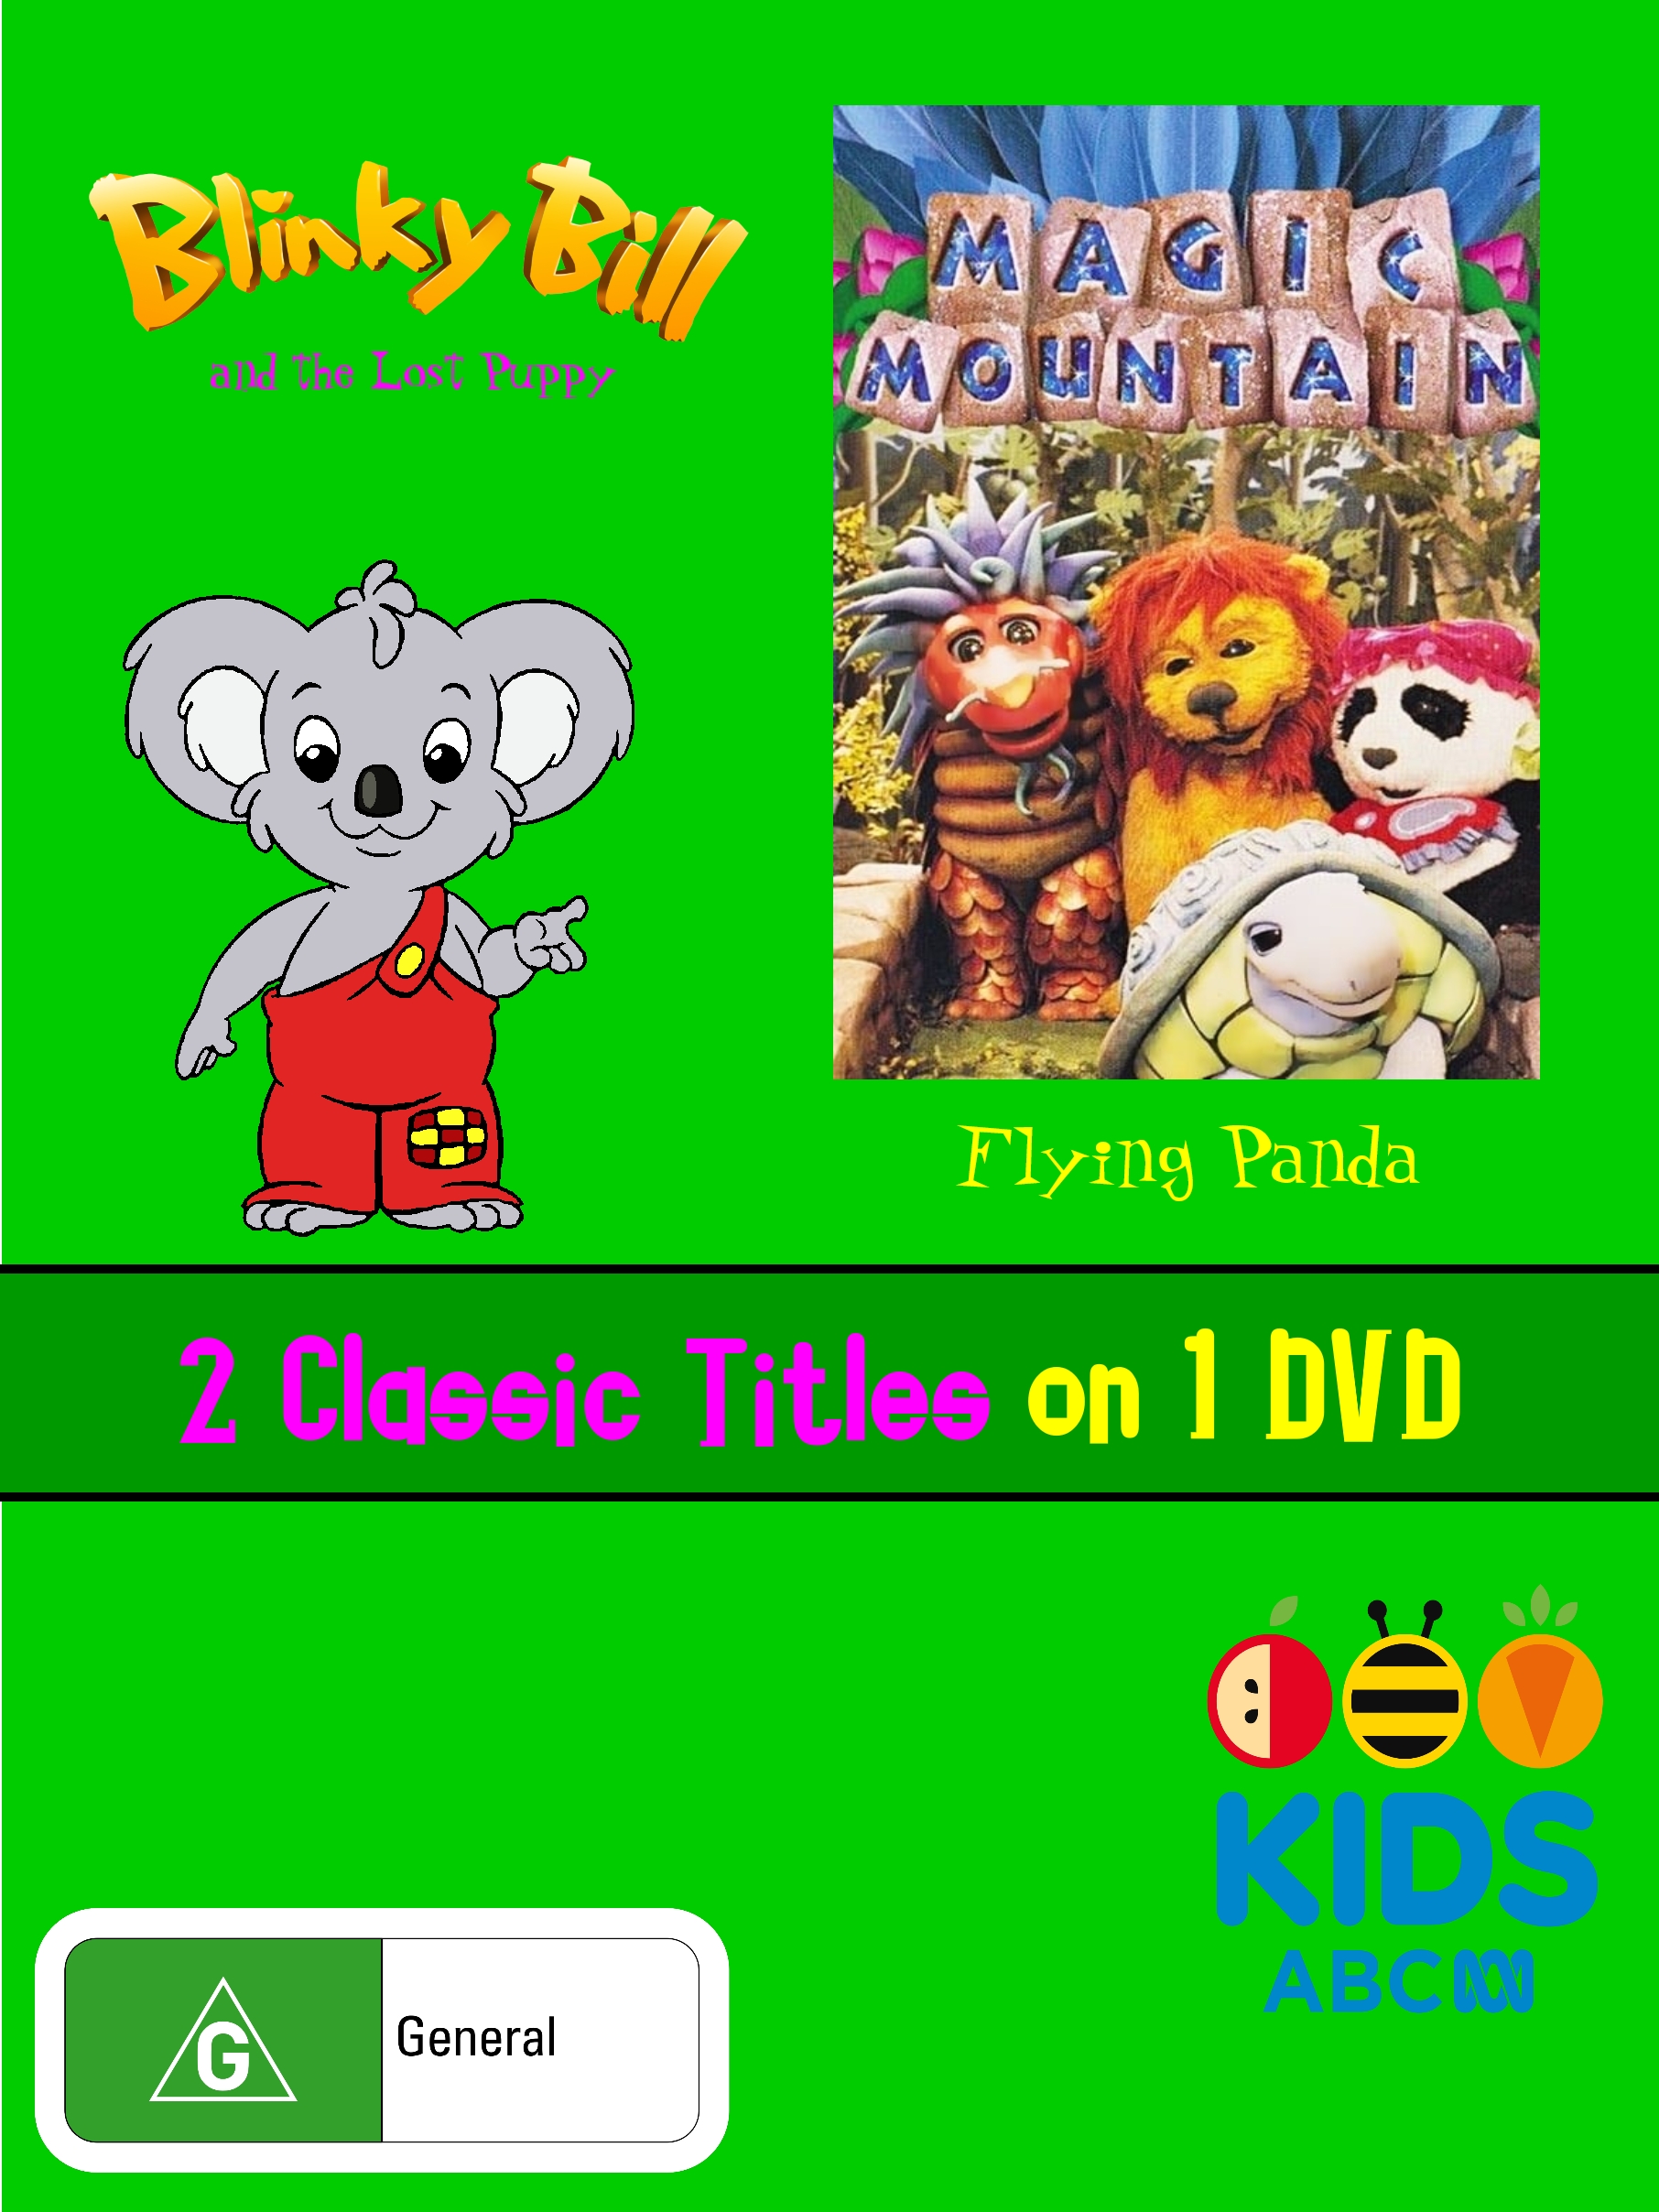 Blinky Bill and the Lost Puppy/Magic Mountain - Flying Panda (video)